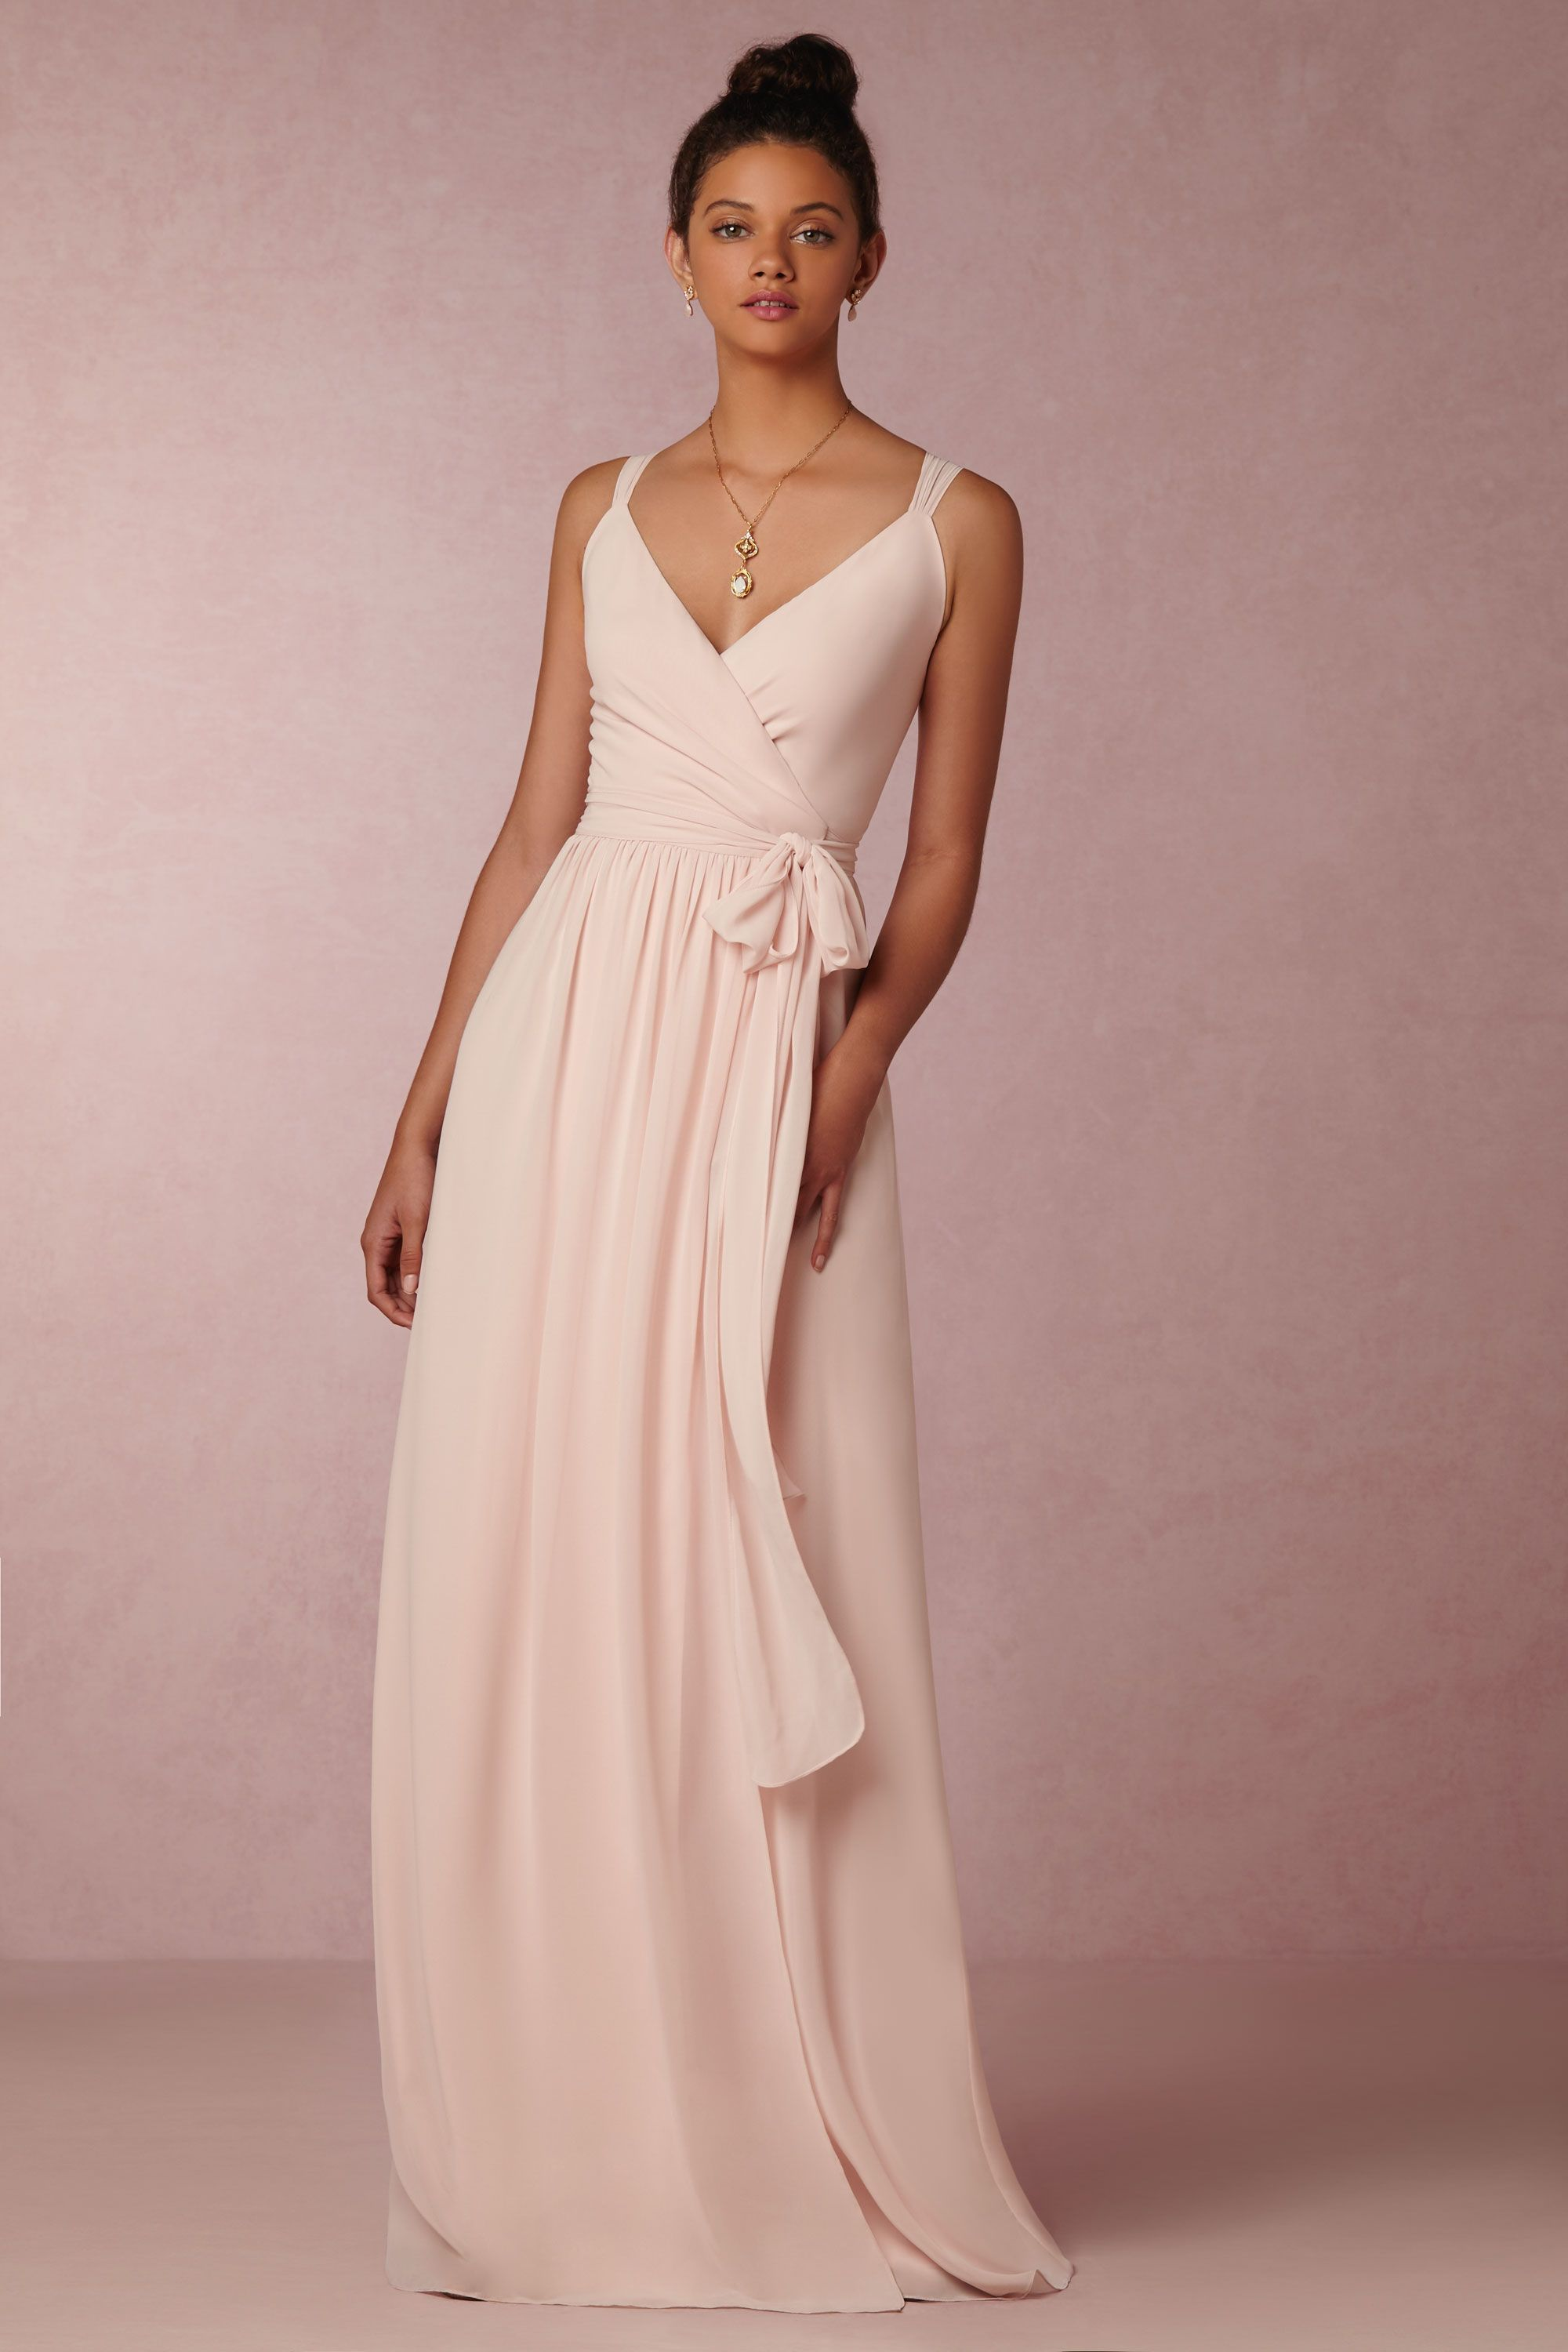 BHLDN Cadence Dress in Bridesmaids Bridesmaid Dresses Long at BHLDN ...